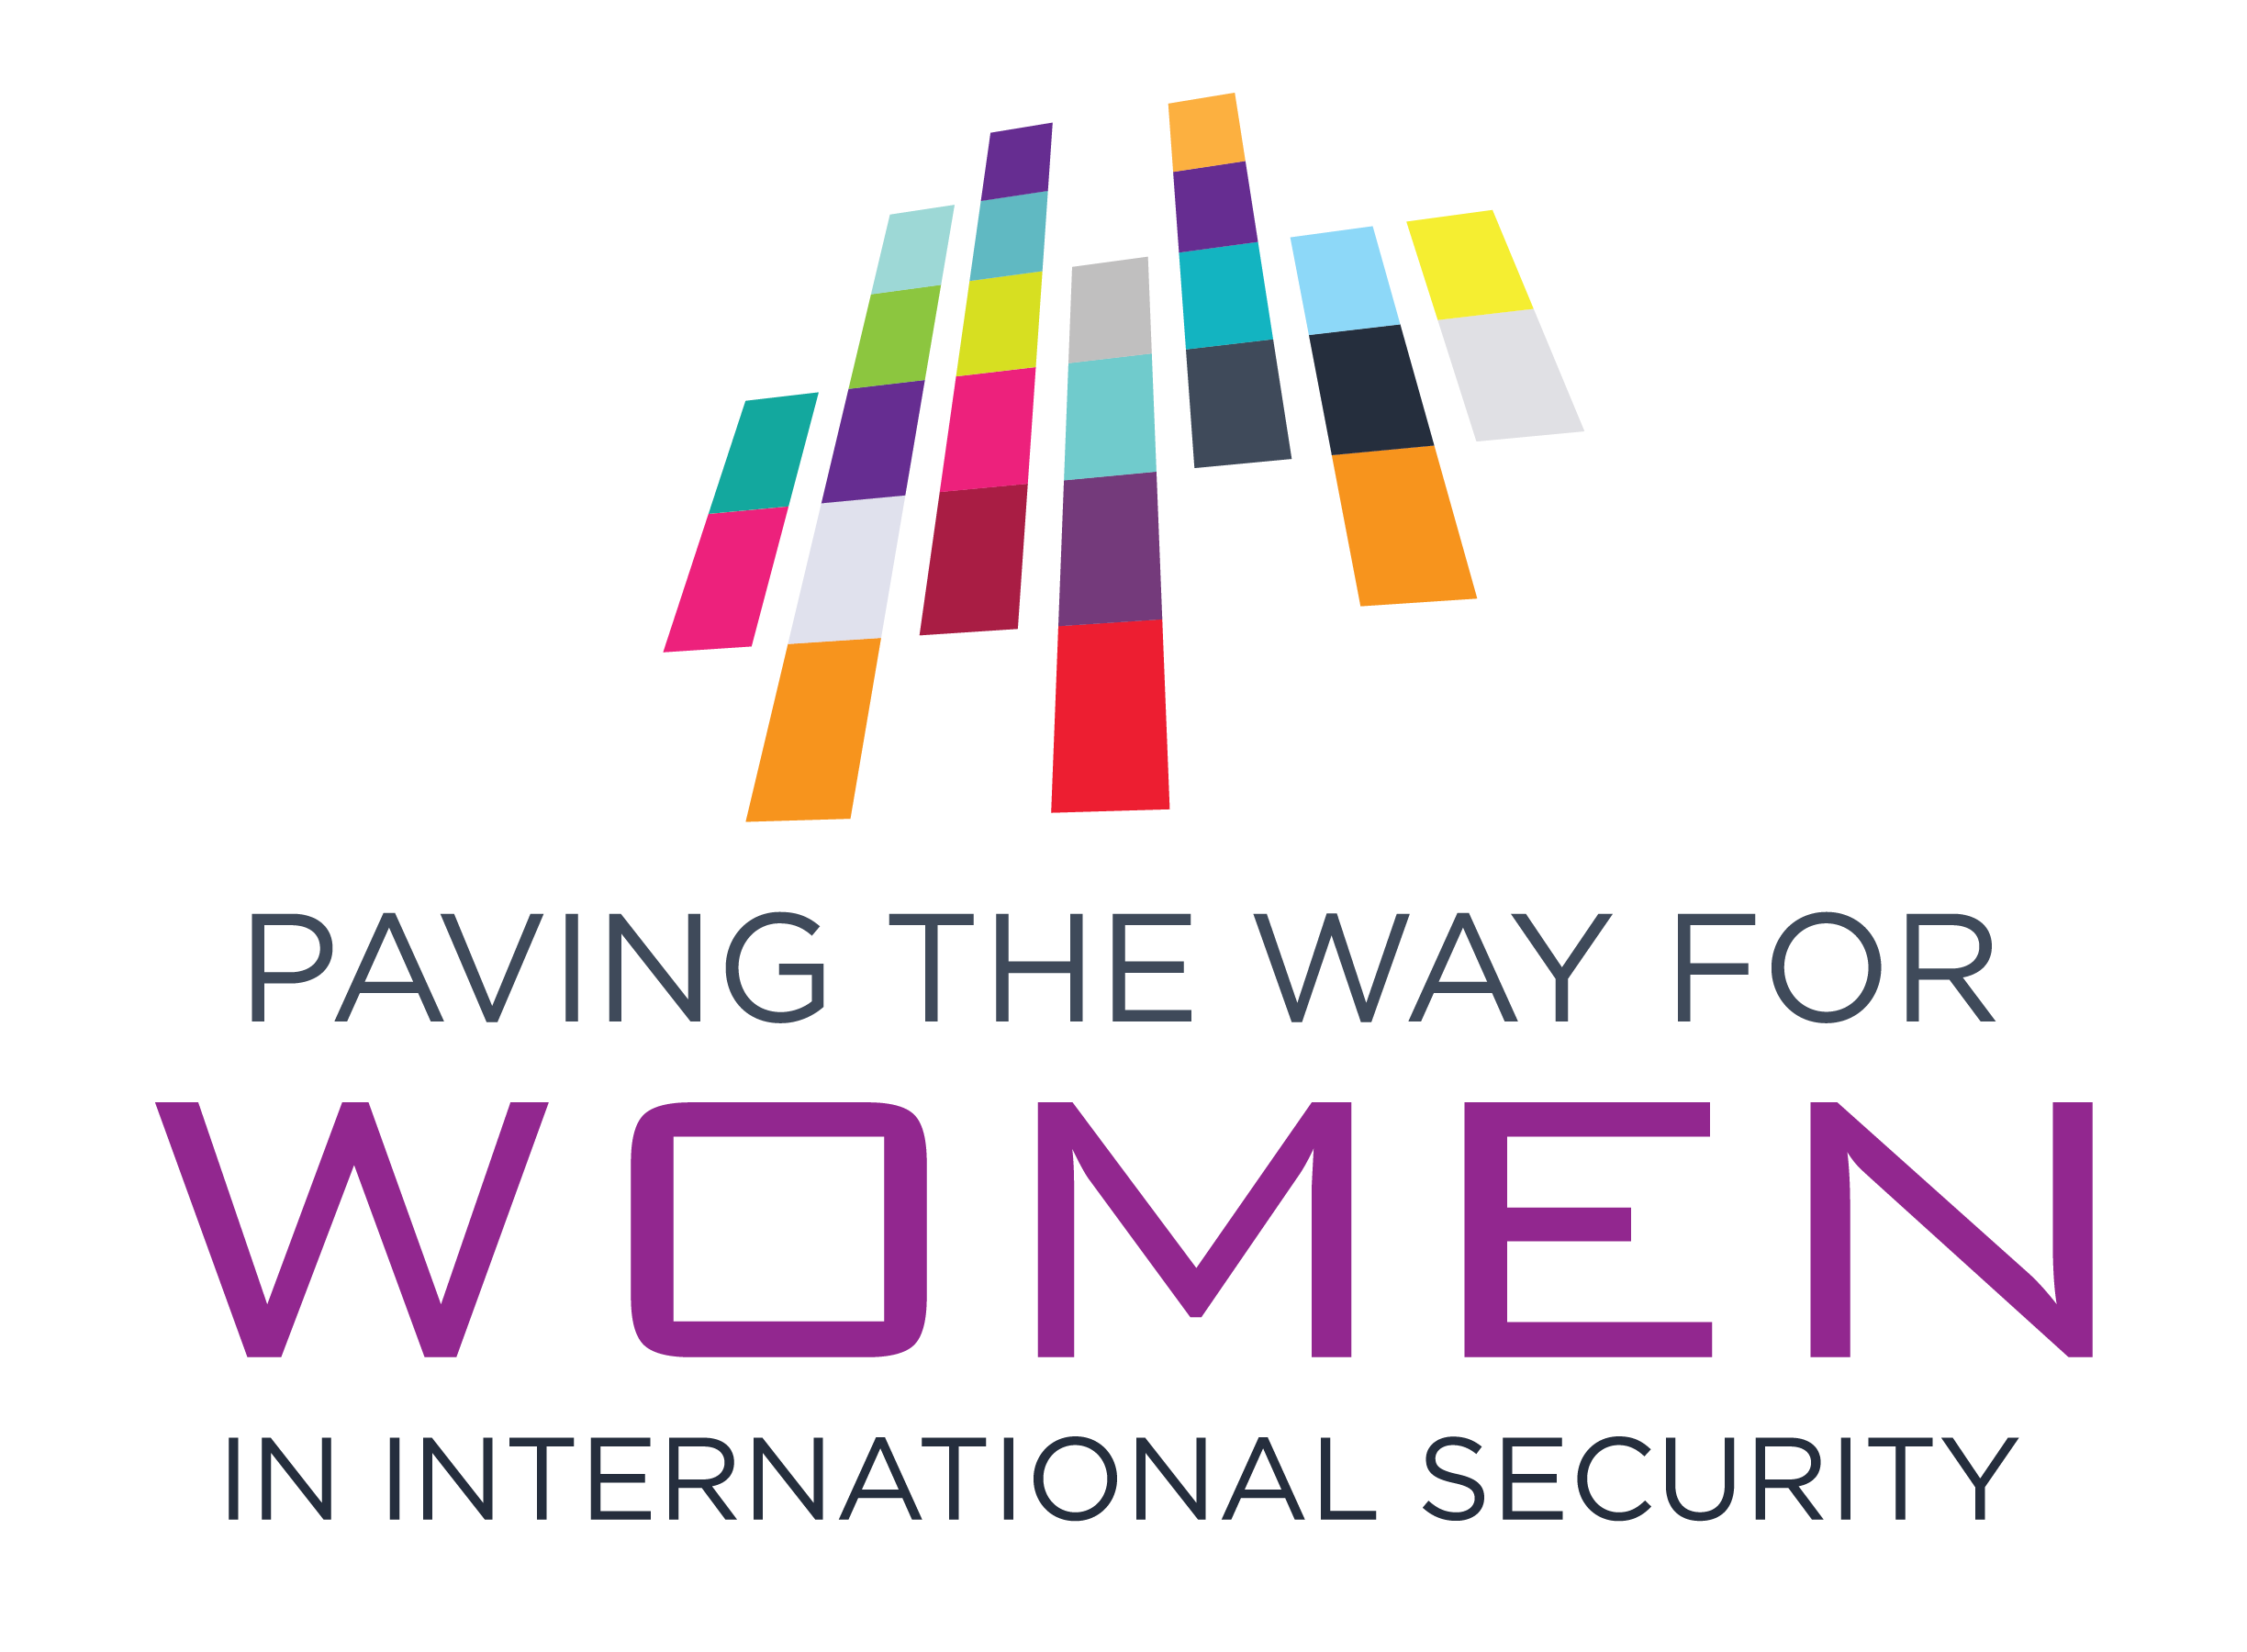 Paving the Way for Women in International Security